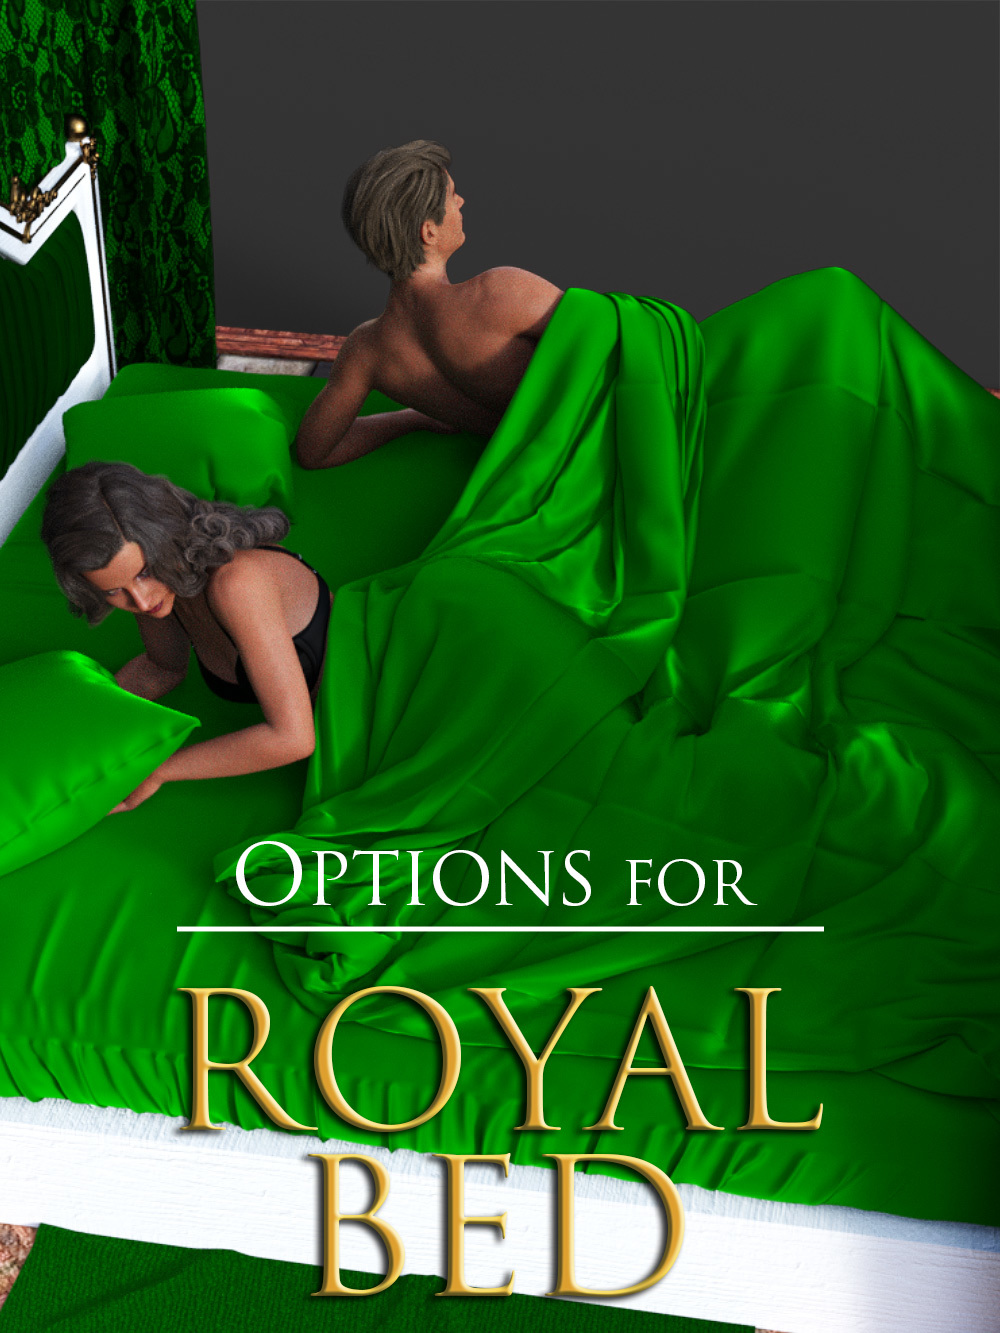 Options for Royal Bed